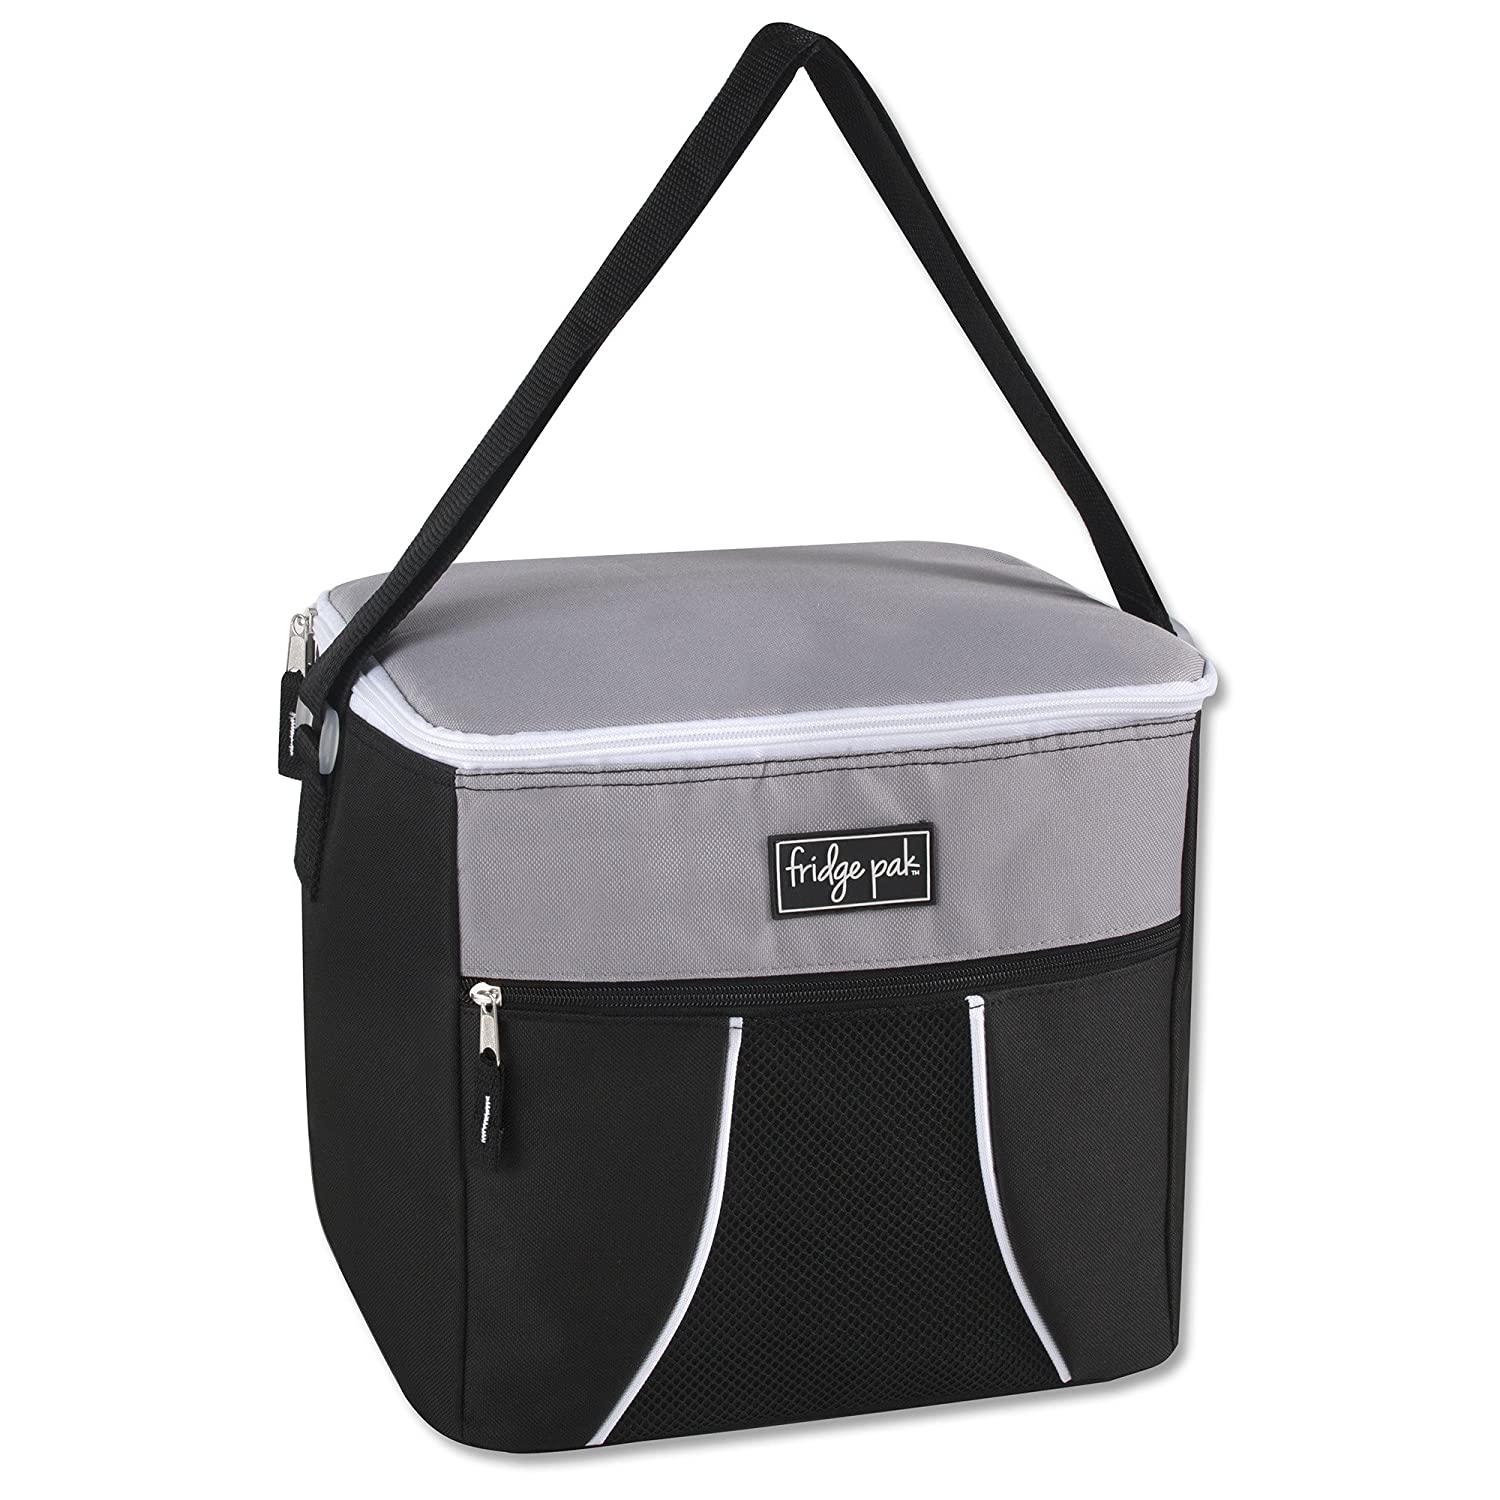 Fridge Pak Insulated 24 Can Large Capacity Insulated Cooler Bag and Extra Large Adult Lunchbox Black